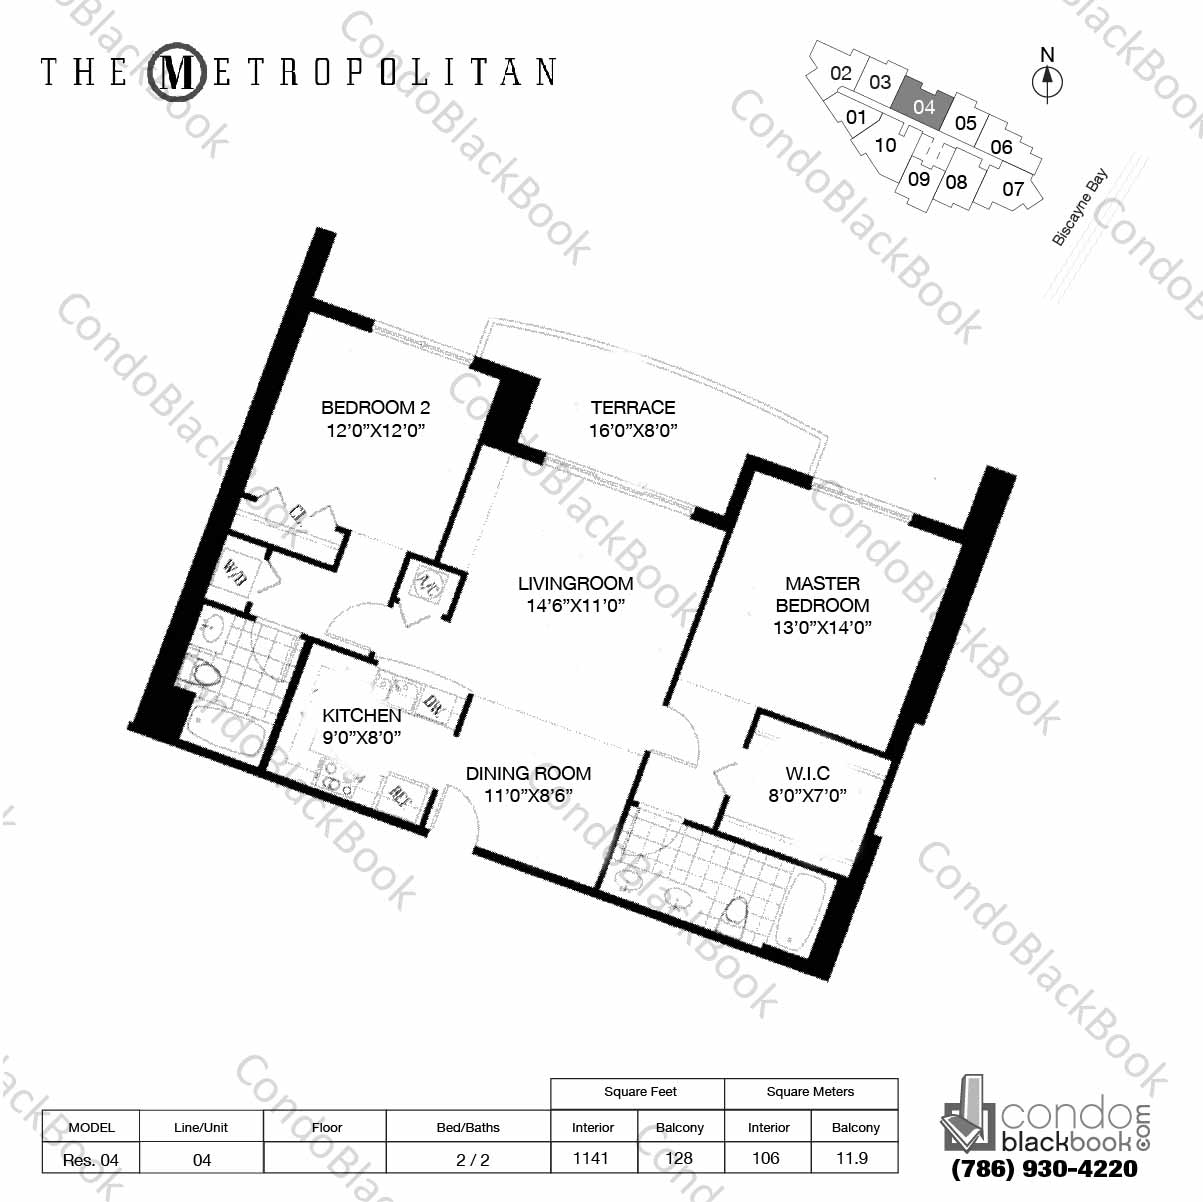 Floor plan for Metropolitan at Brickell Brickell Miami, model Res. 04, line 04, 2 / 2 bedrooms, 1141 sq ft